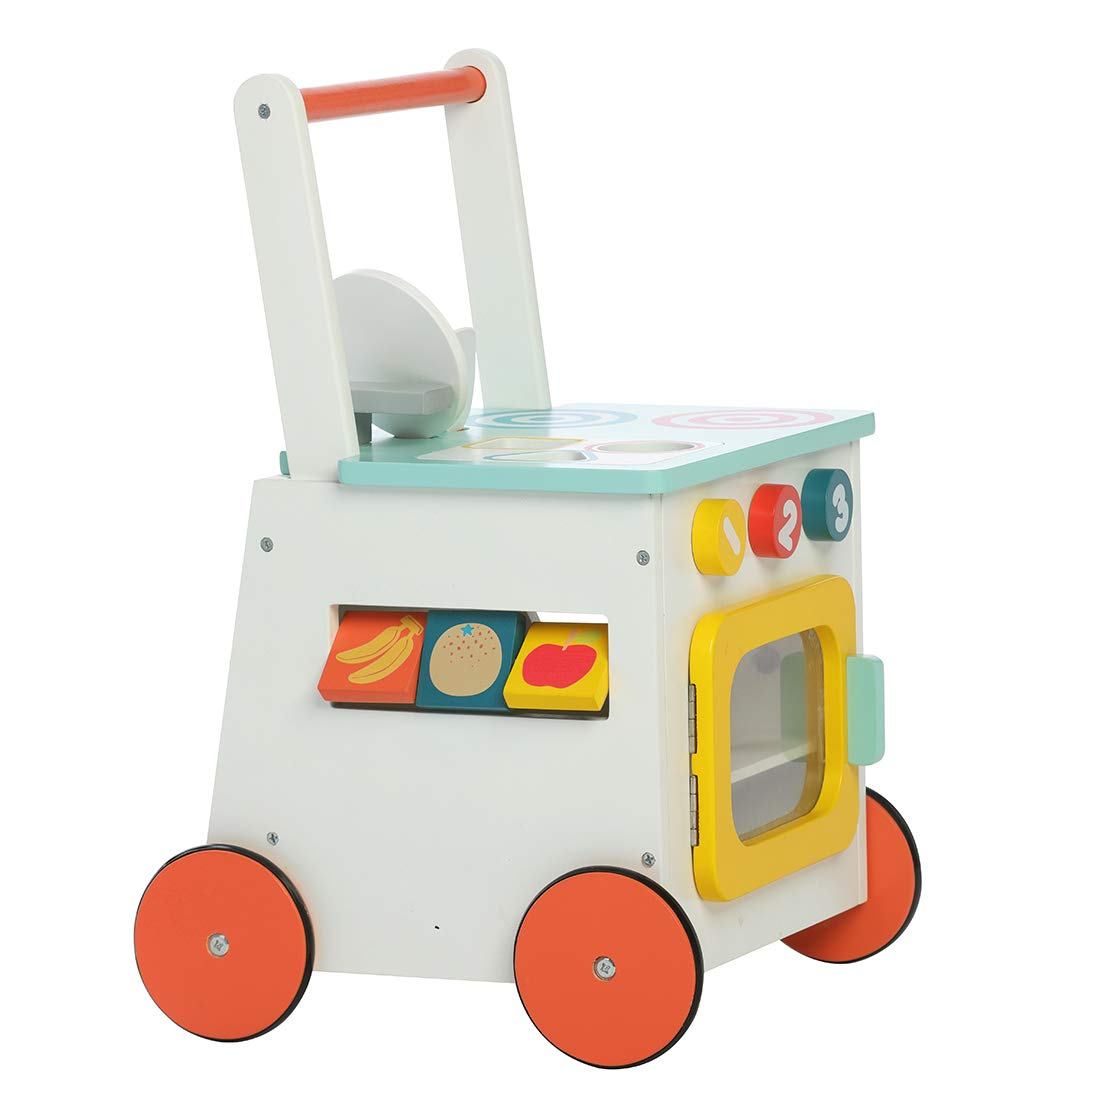 labebe Children 2-in-1 Little Play Kitchen Wooden Push Walker Toddler Push /& Pull Toys Activity Walker Stroller Walker Toy Wagon with Wheels for Baby Girls Boys 1-3 Years Old